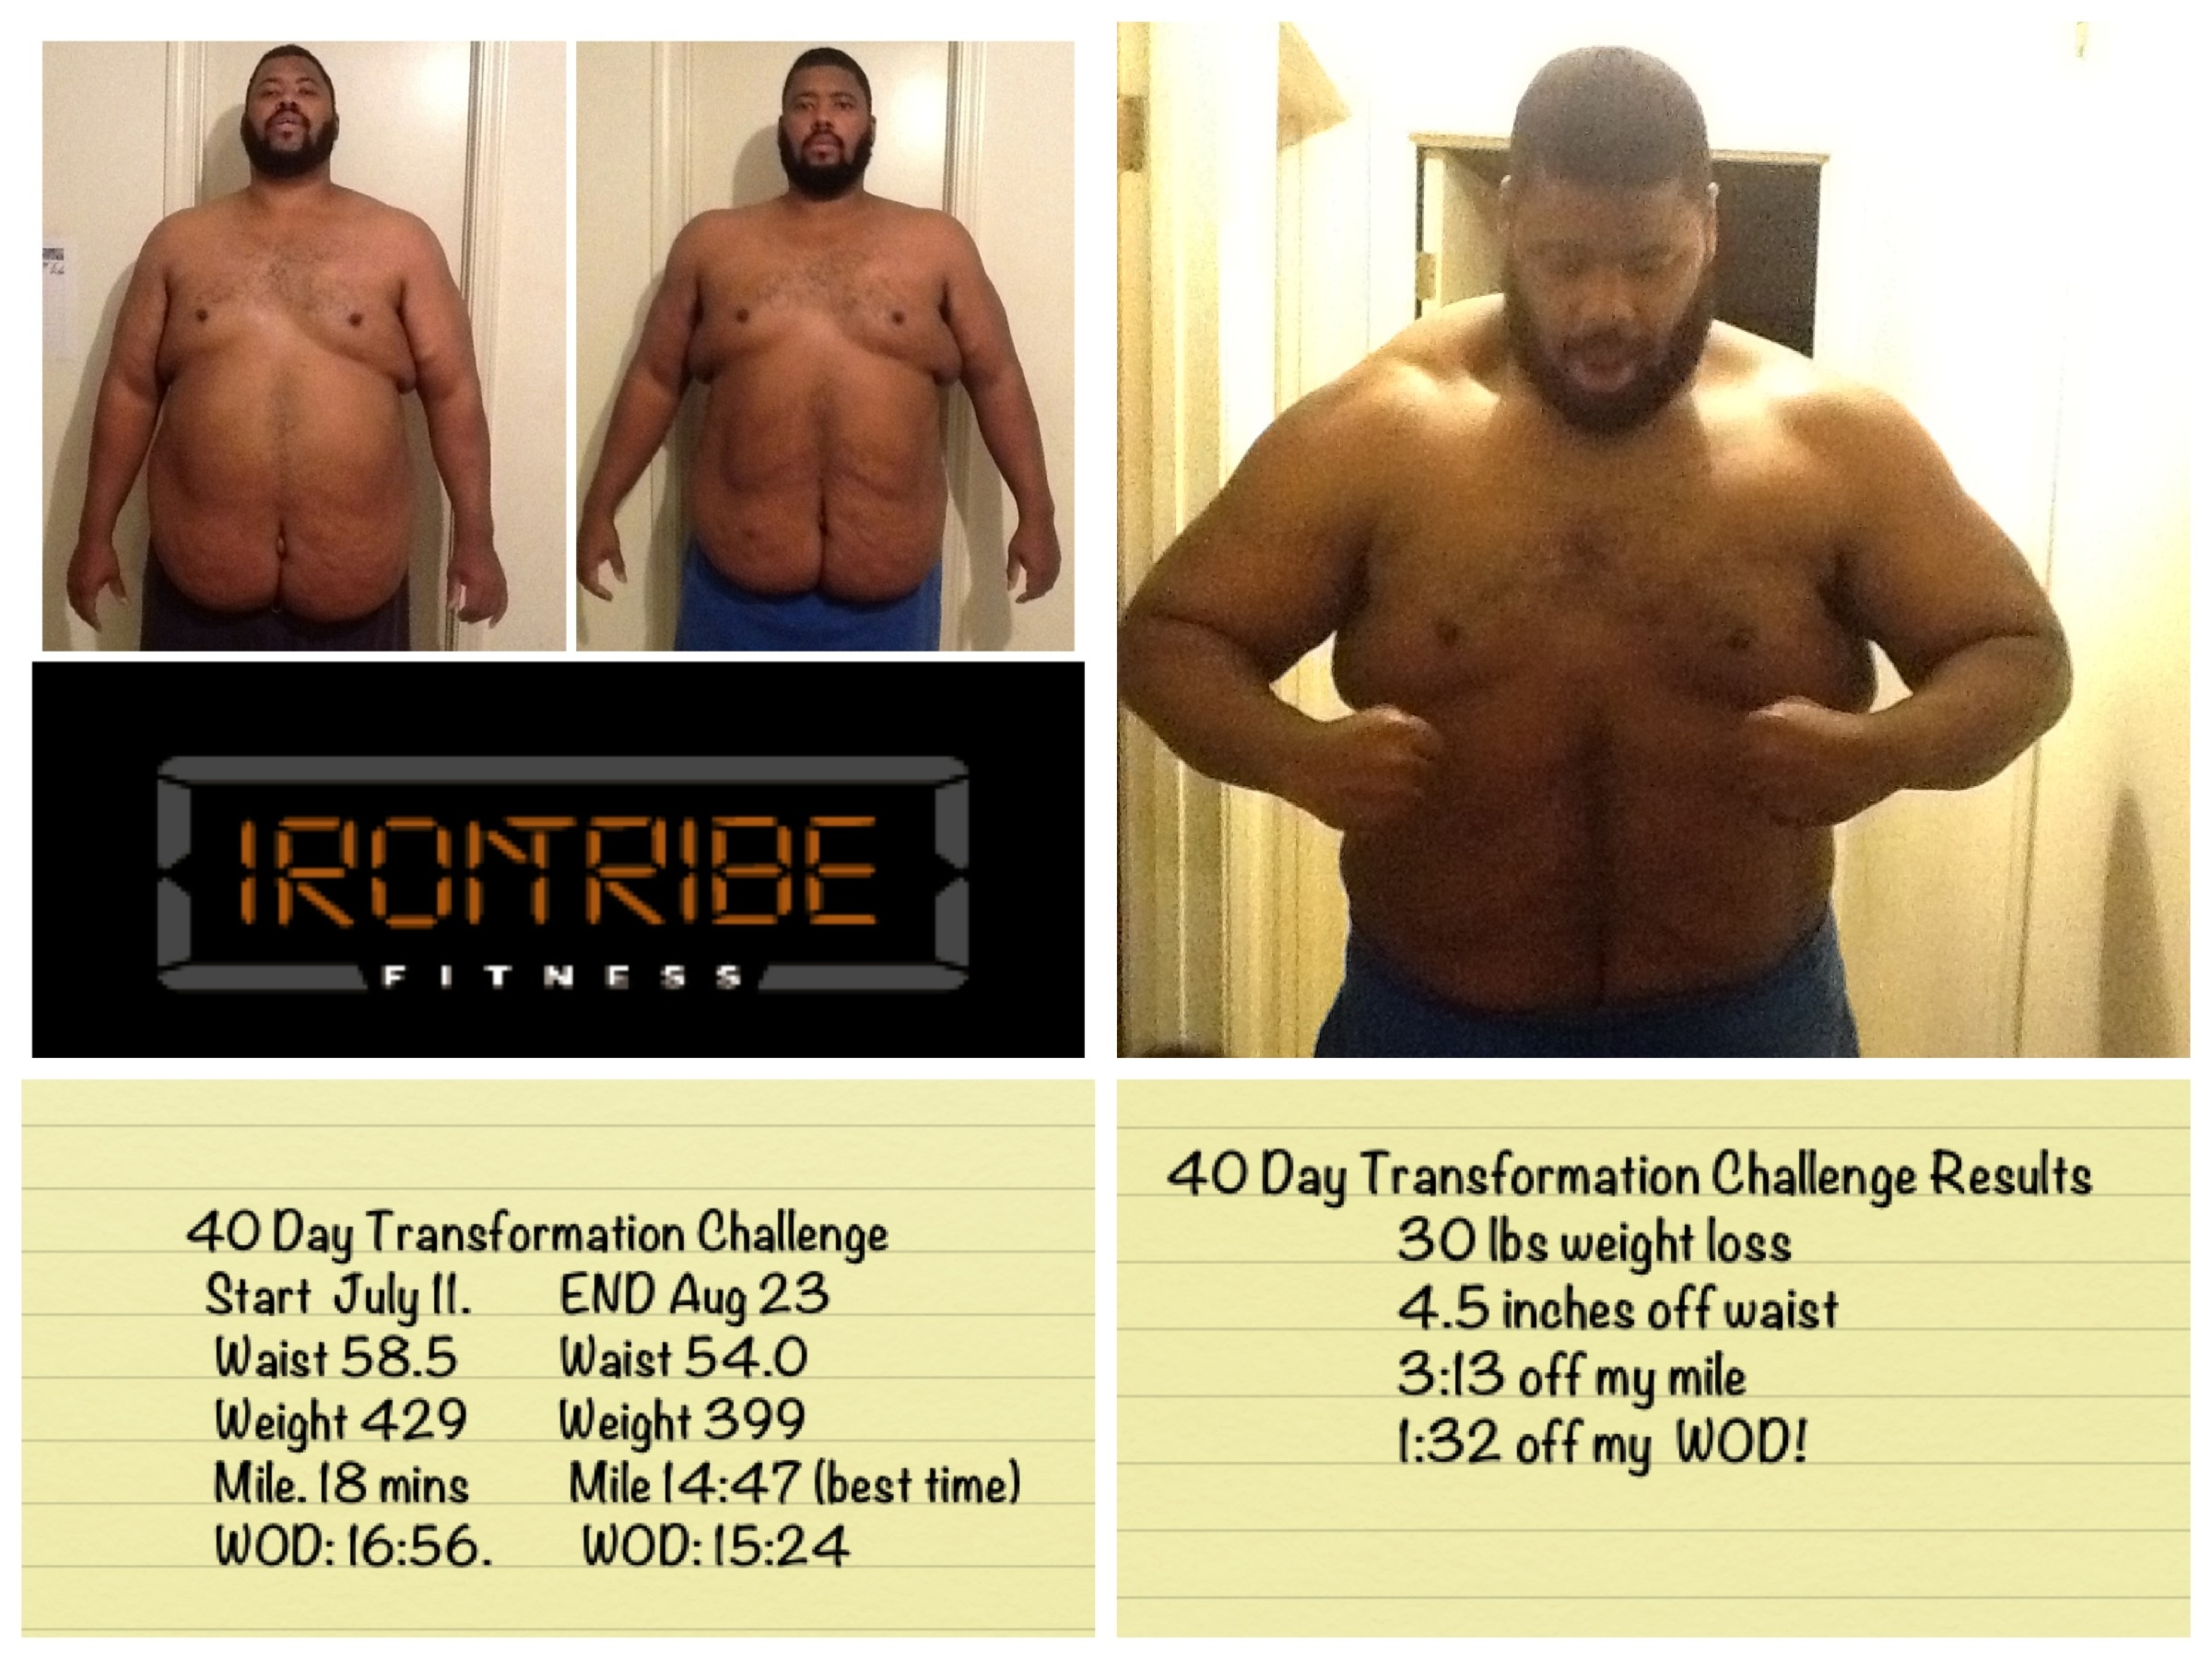 40 Day Transformation Challenge Can A 500 Pound Man